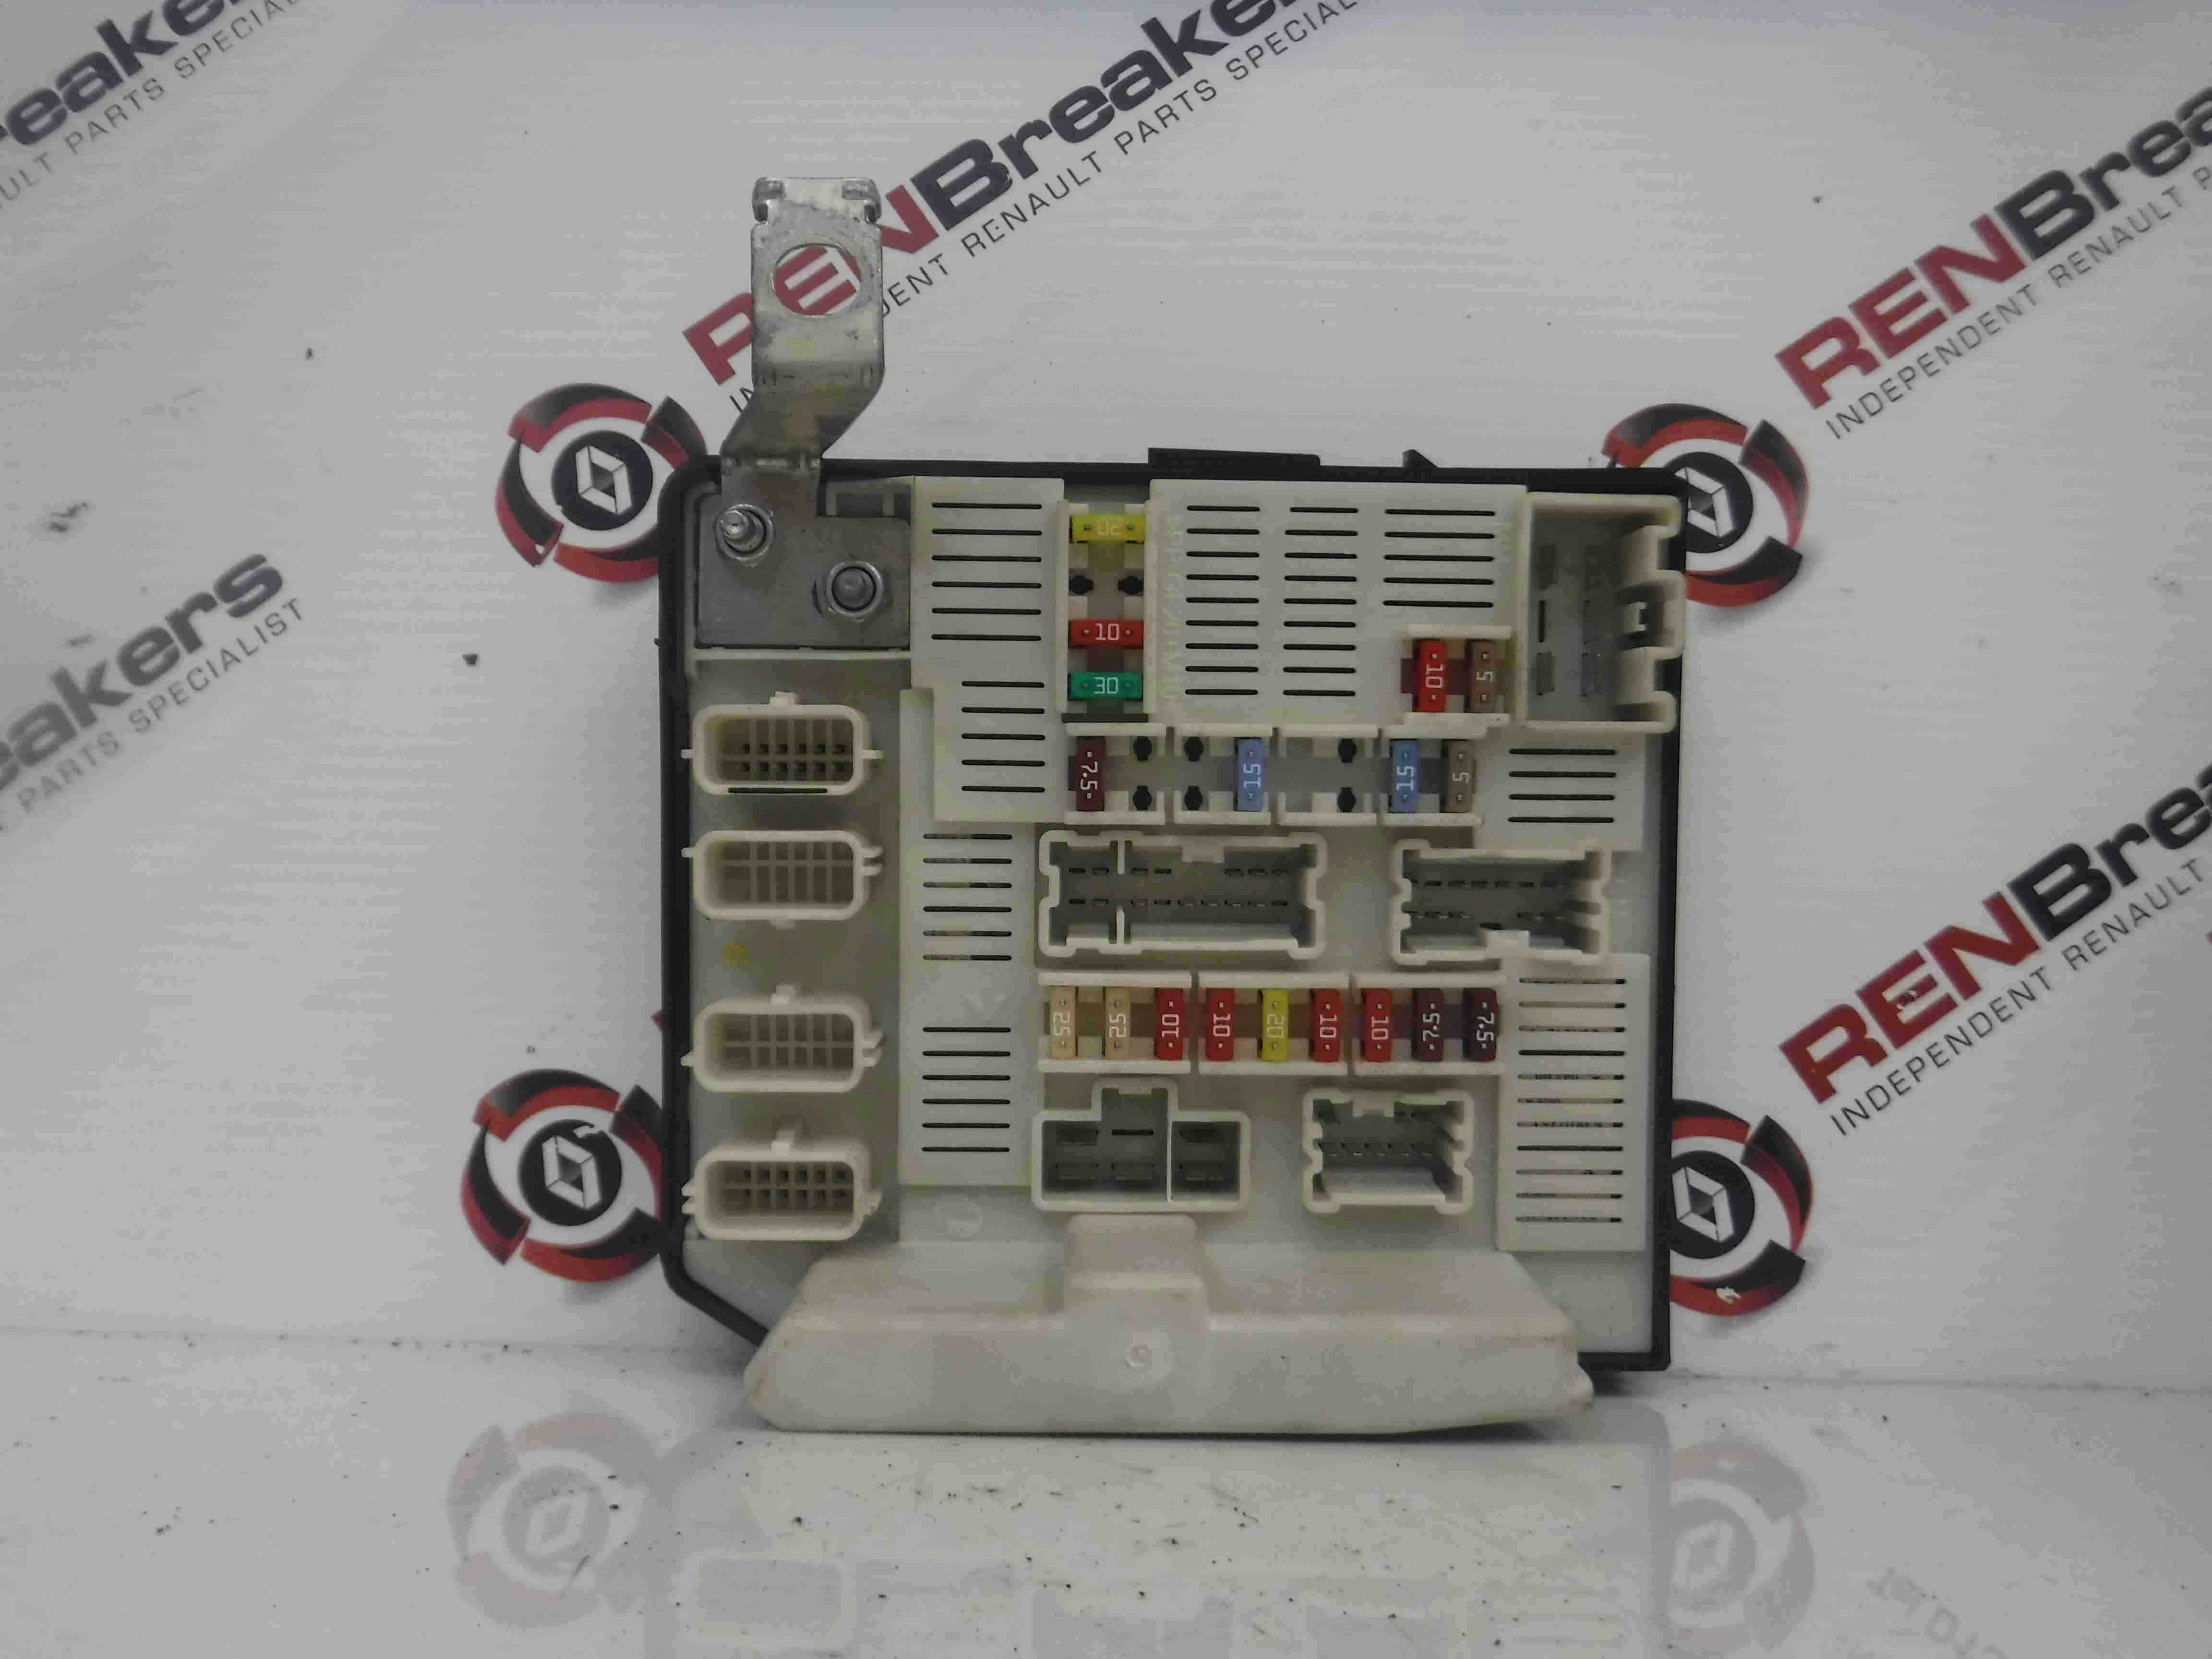 Renault Megane Fuse Box Engine Bay Wiring Diagrams Scenic Removal 2006 2008 Upc Unit Computer